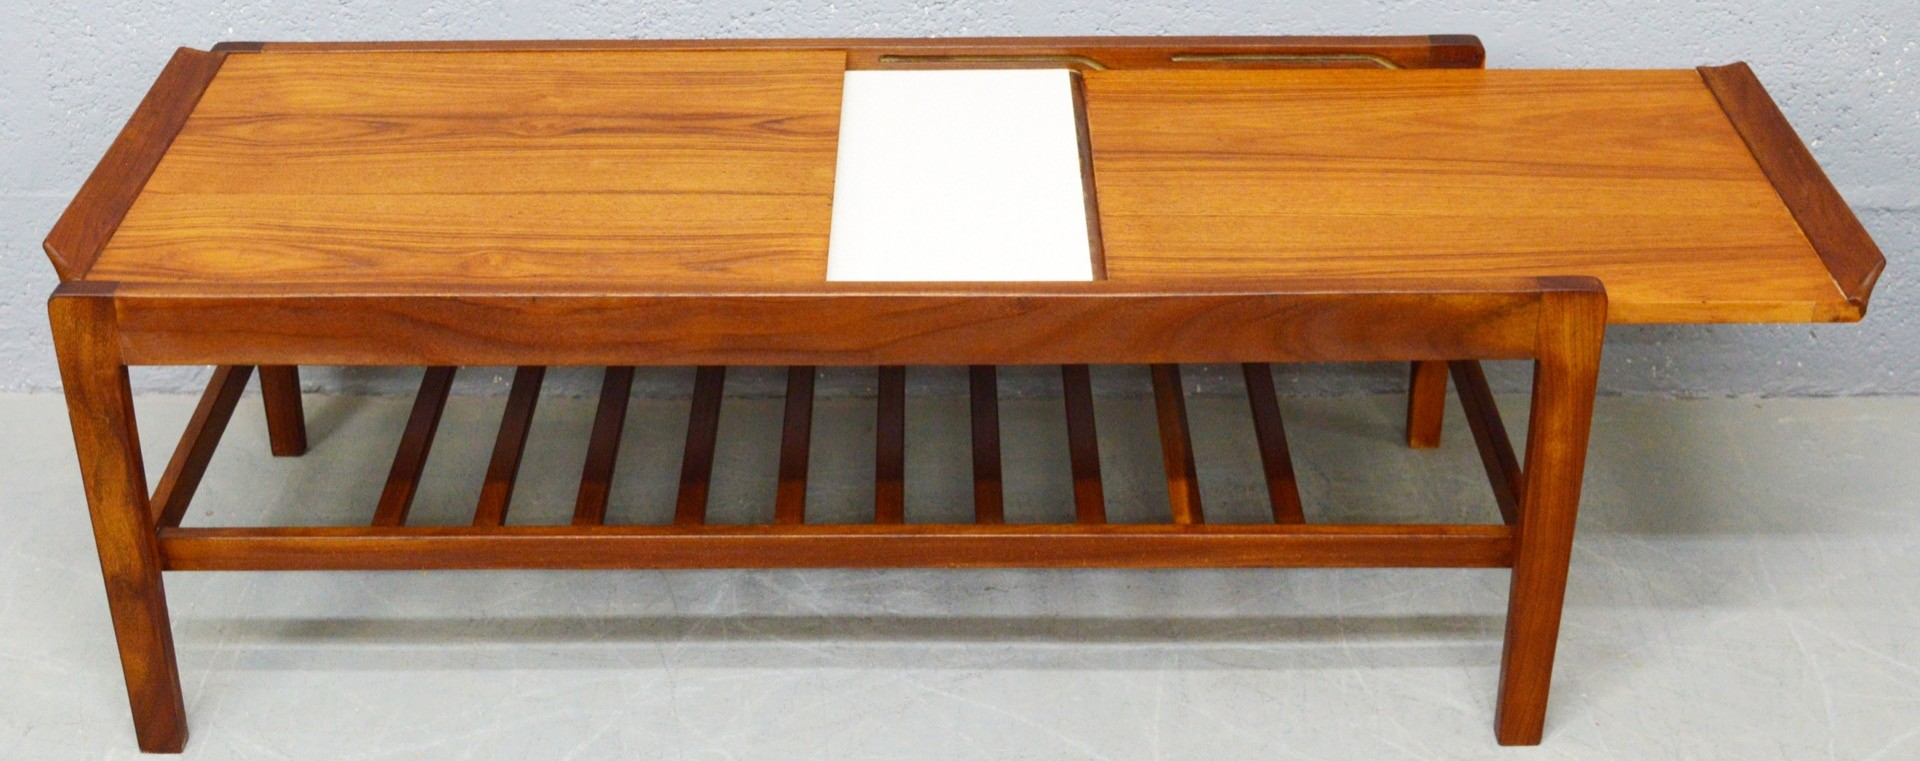 Vintage Teak And Melamine Coffee Table By Remploy 1960s